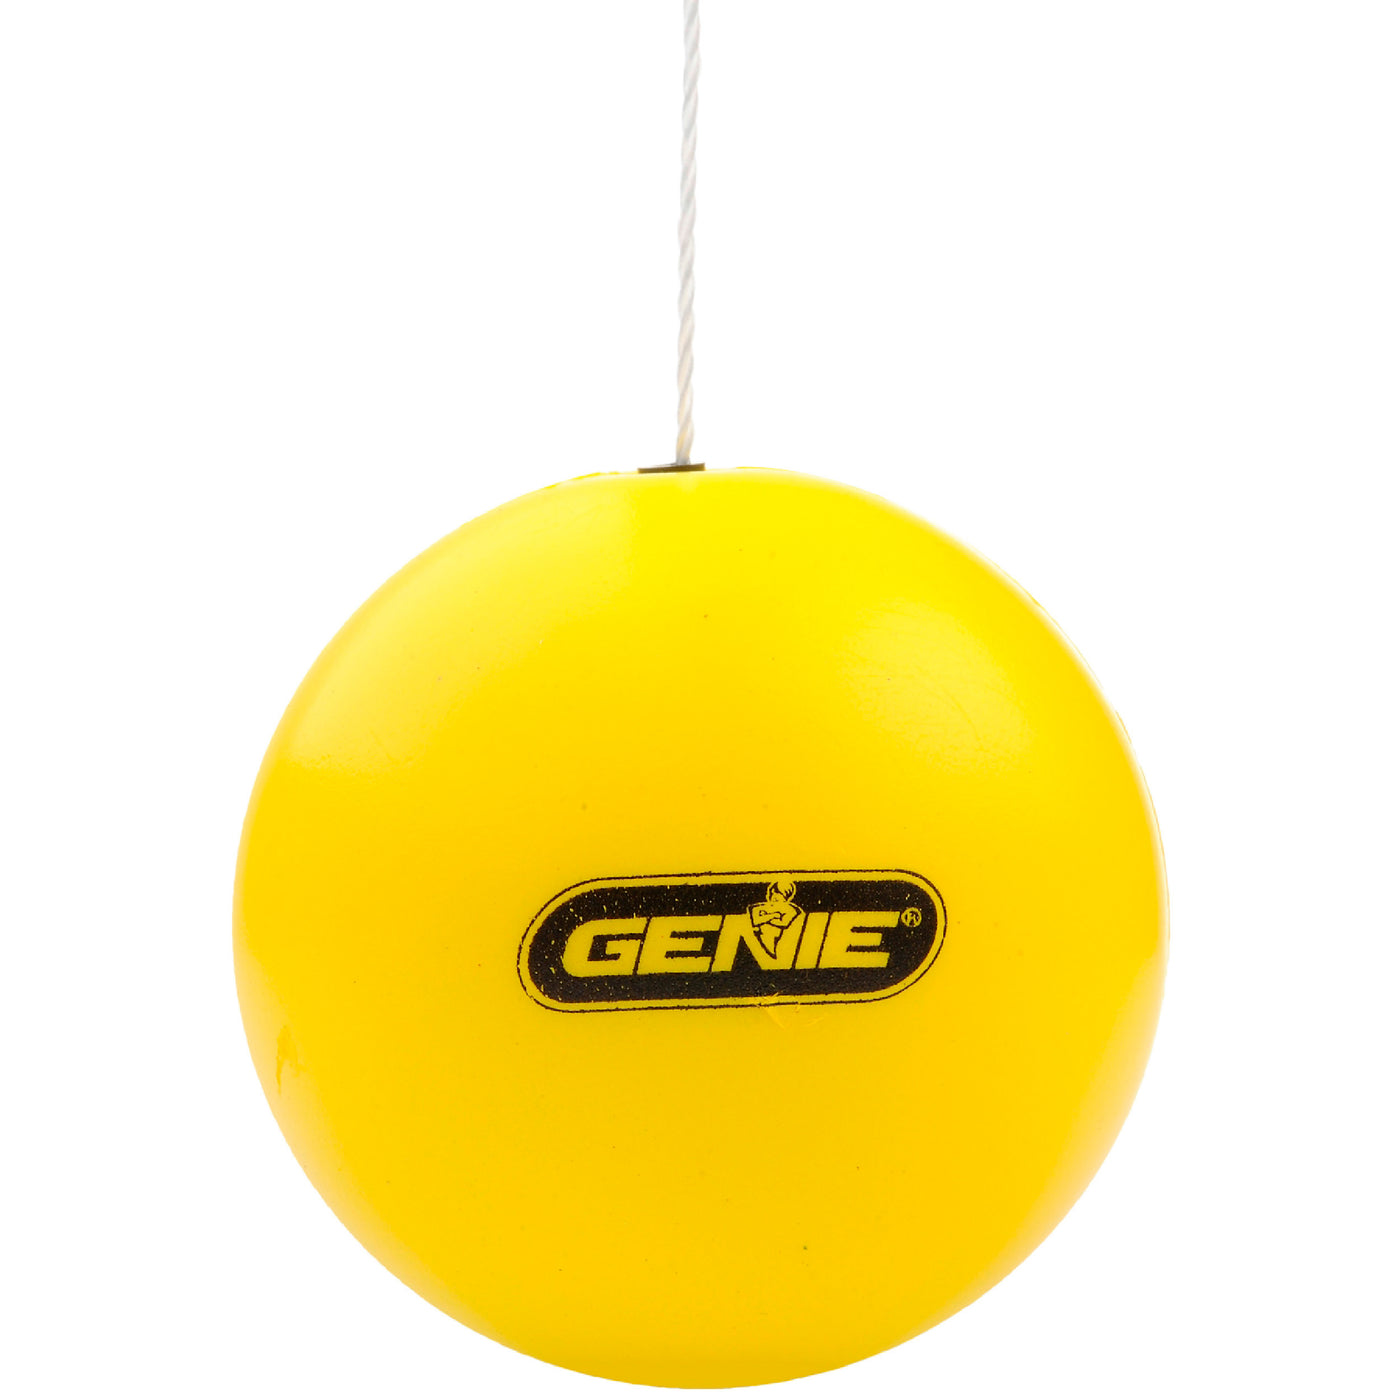 Garage Parking Stop >> Genie Perfect Stop Garage Parking Aid The Genie Company